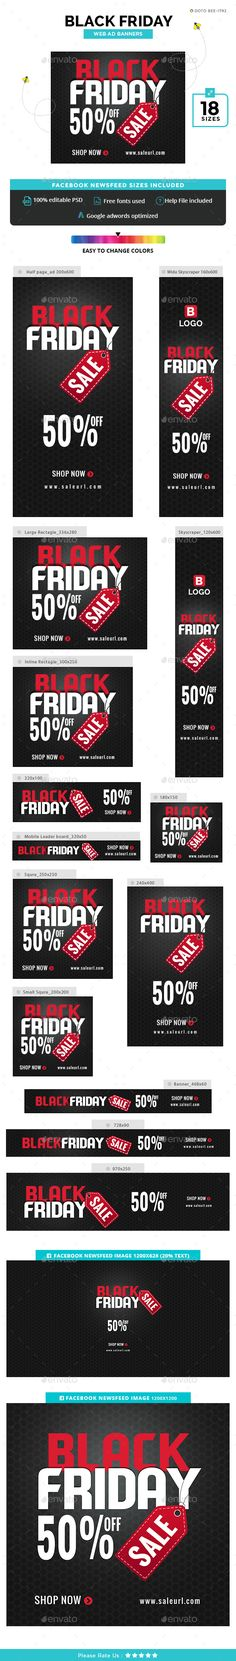 Black Friday Banners Ads Design Template - Banners & Ads Web Elements Design template PSD. Download here: https://graphicriver.net/item/black-friday-banners/18921513?ref=yinkira